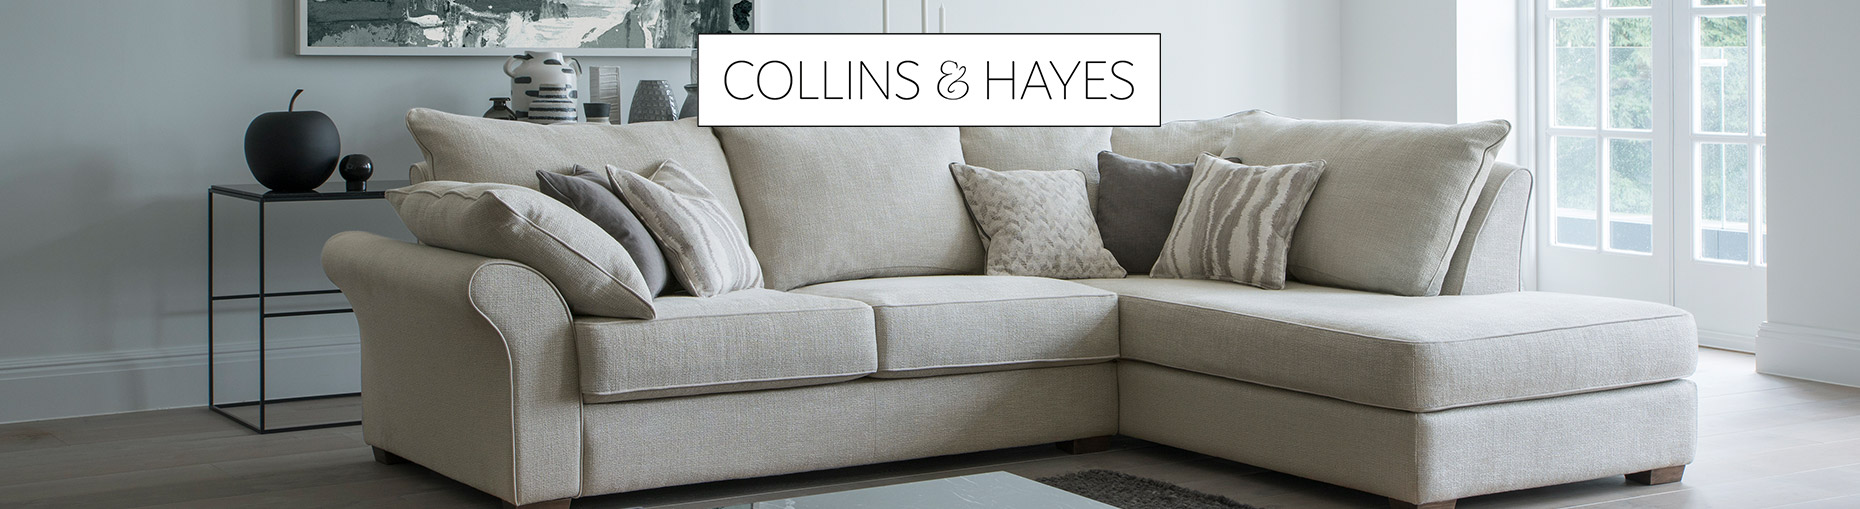 Collins and Hayes sofa collections at Forrest Furnishing